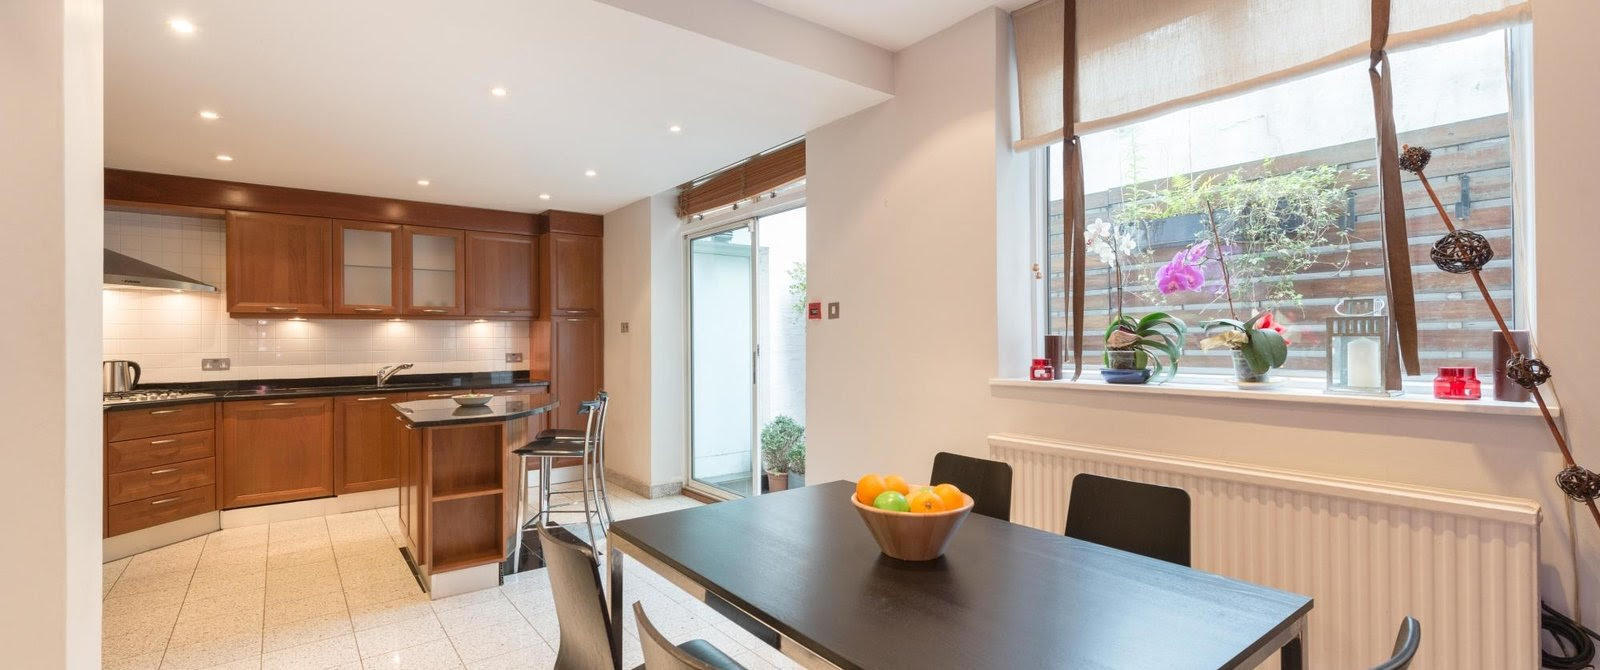 4 bedroom house to rent in Portman Close, London, W1 ...